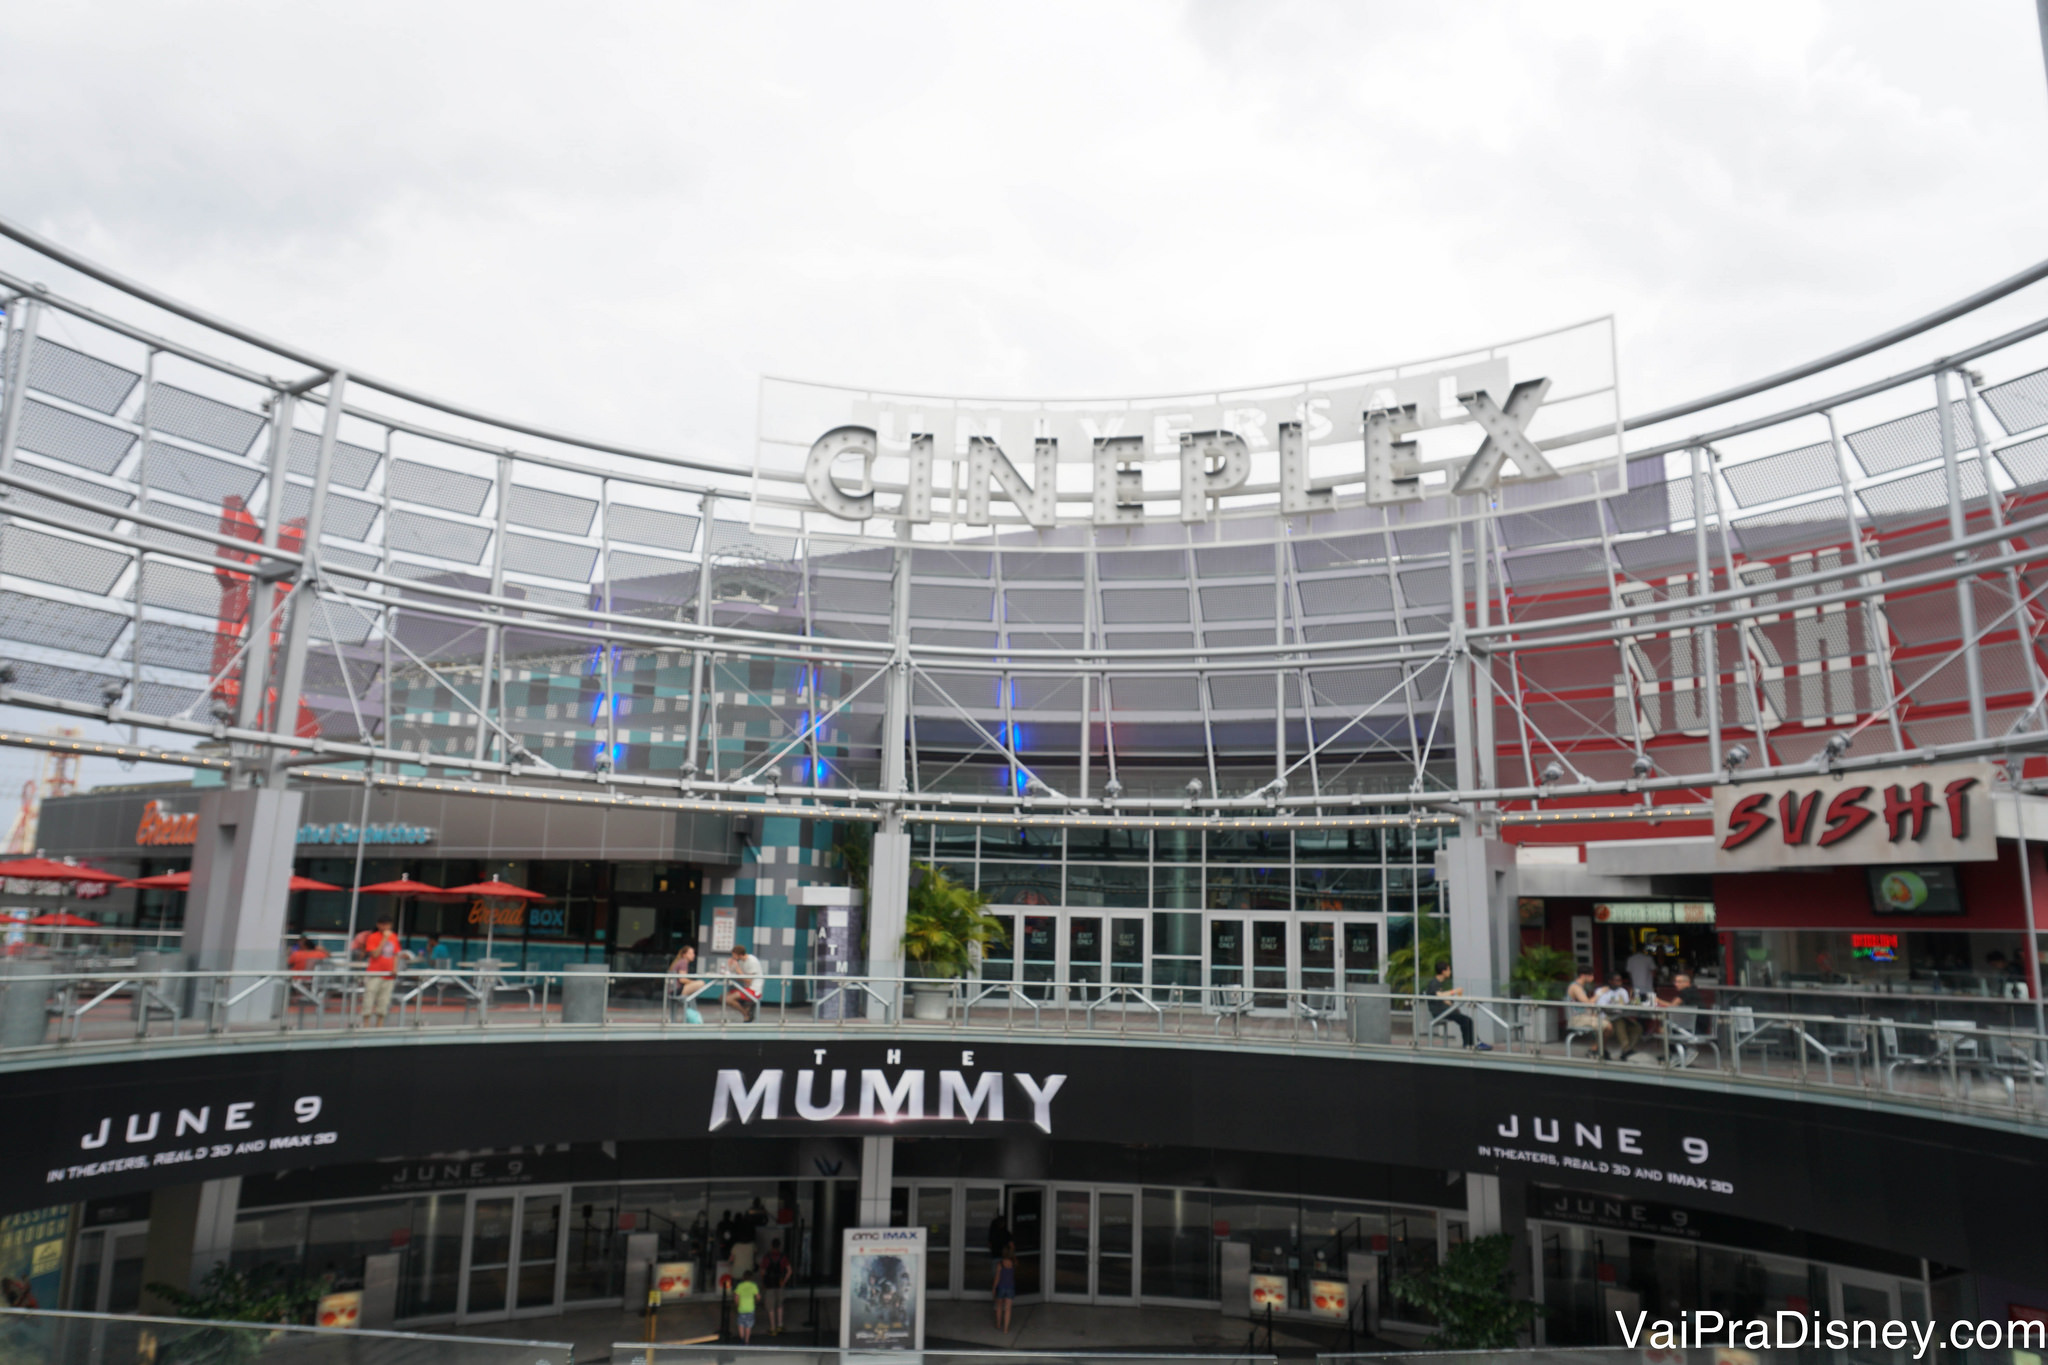 Foto do gigante complexo de cinemas do CityWalk, chamado de Cineplex